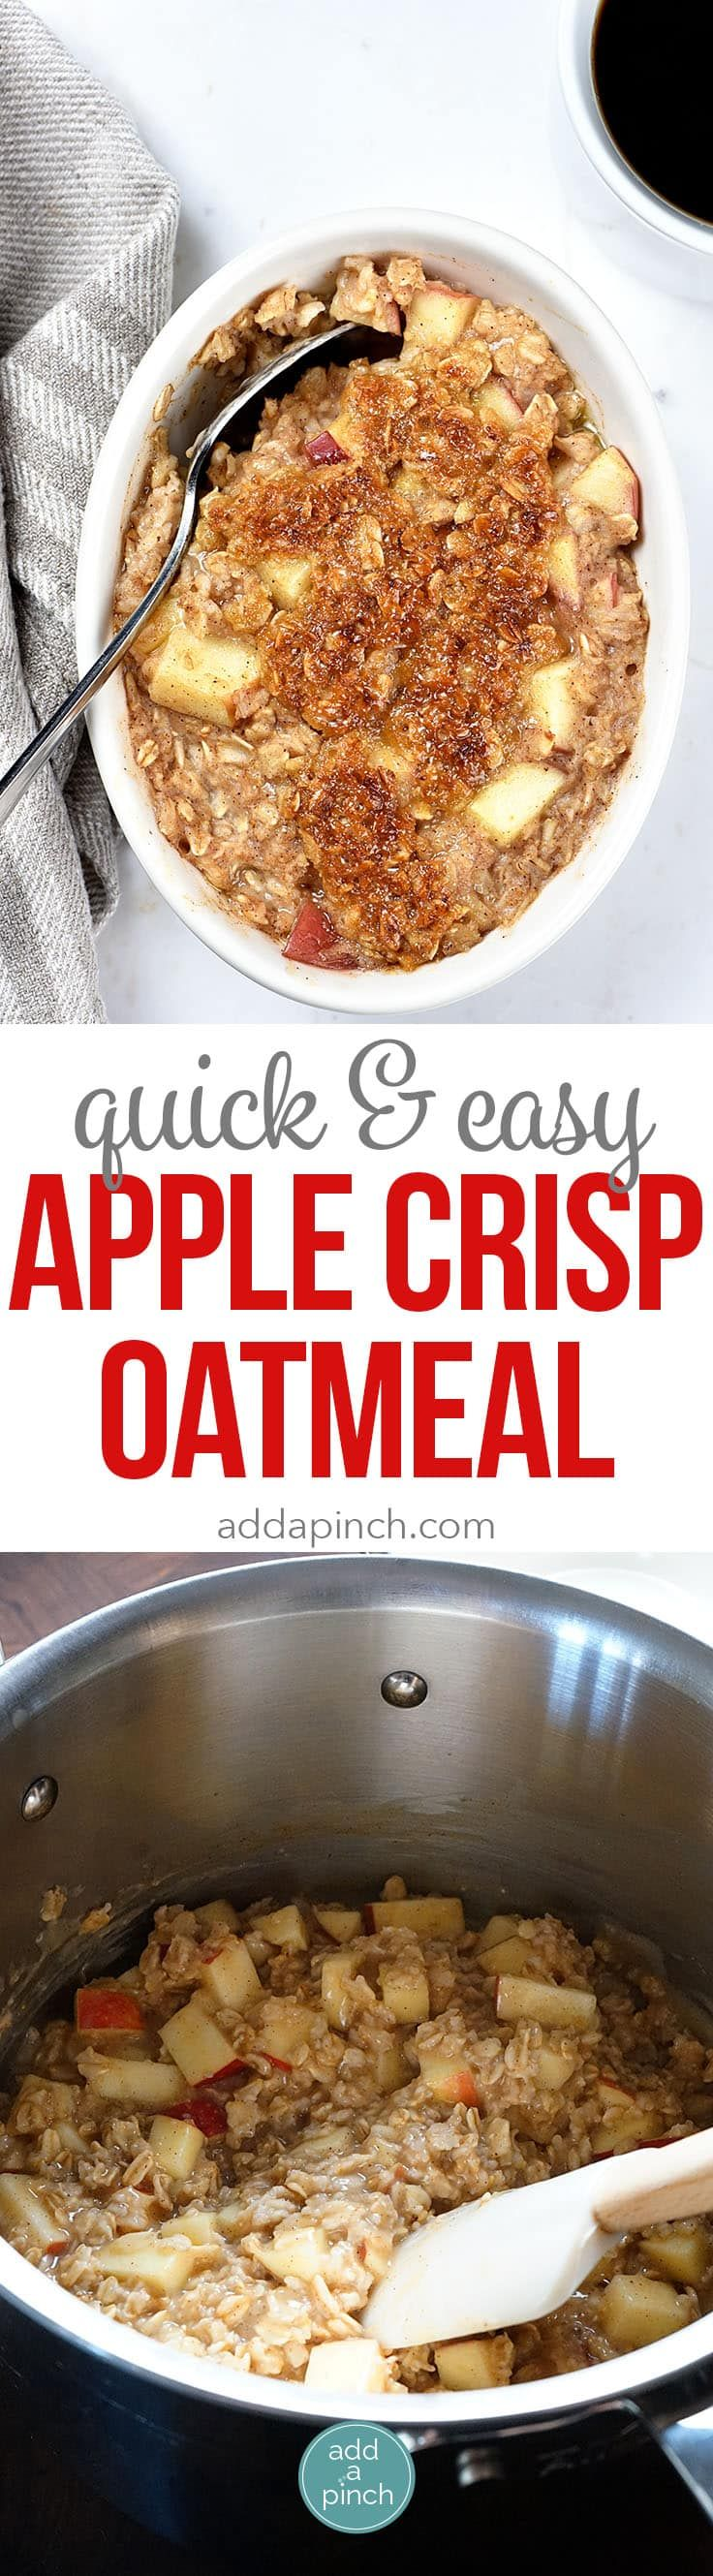 When aisha cooks how to make oatmeal custard my style aisha -  Apple Crisp Oatmeal Is The Perfect Combination Of Everyone S Favorite Fall Dessert And Breakfast Ready In Minutes My Apple Crisp Oatmeal Is